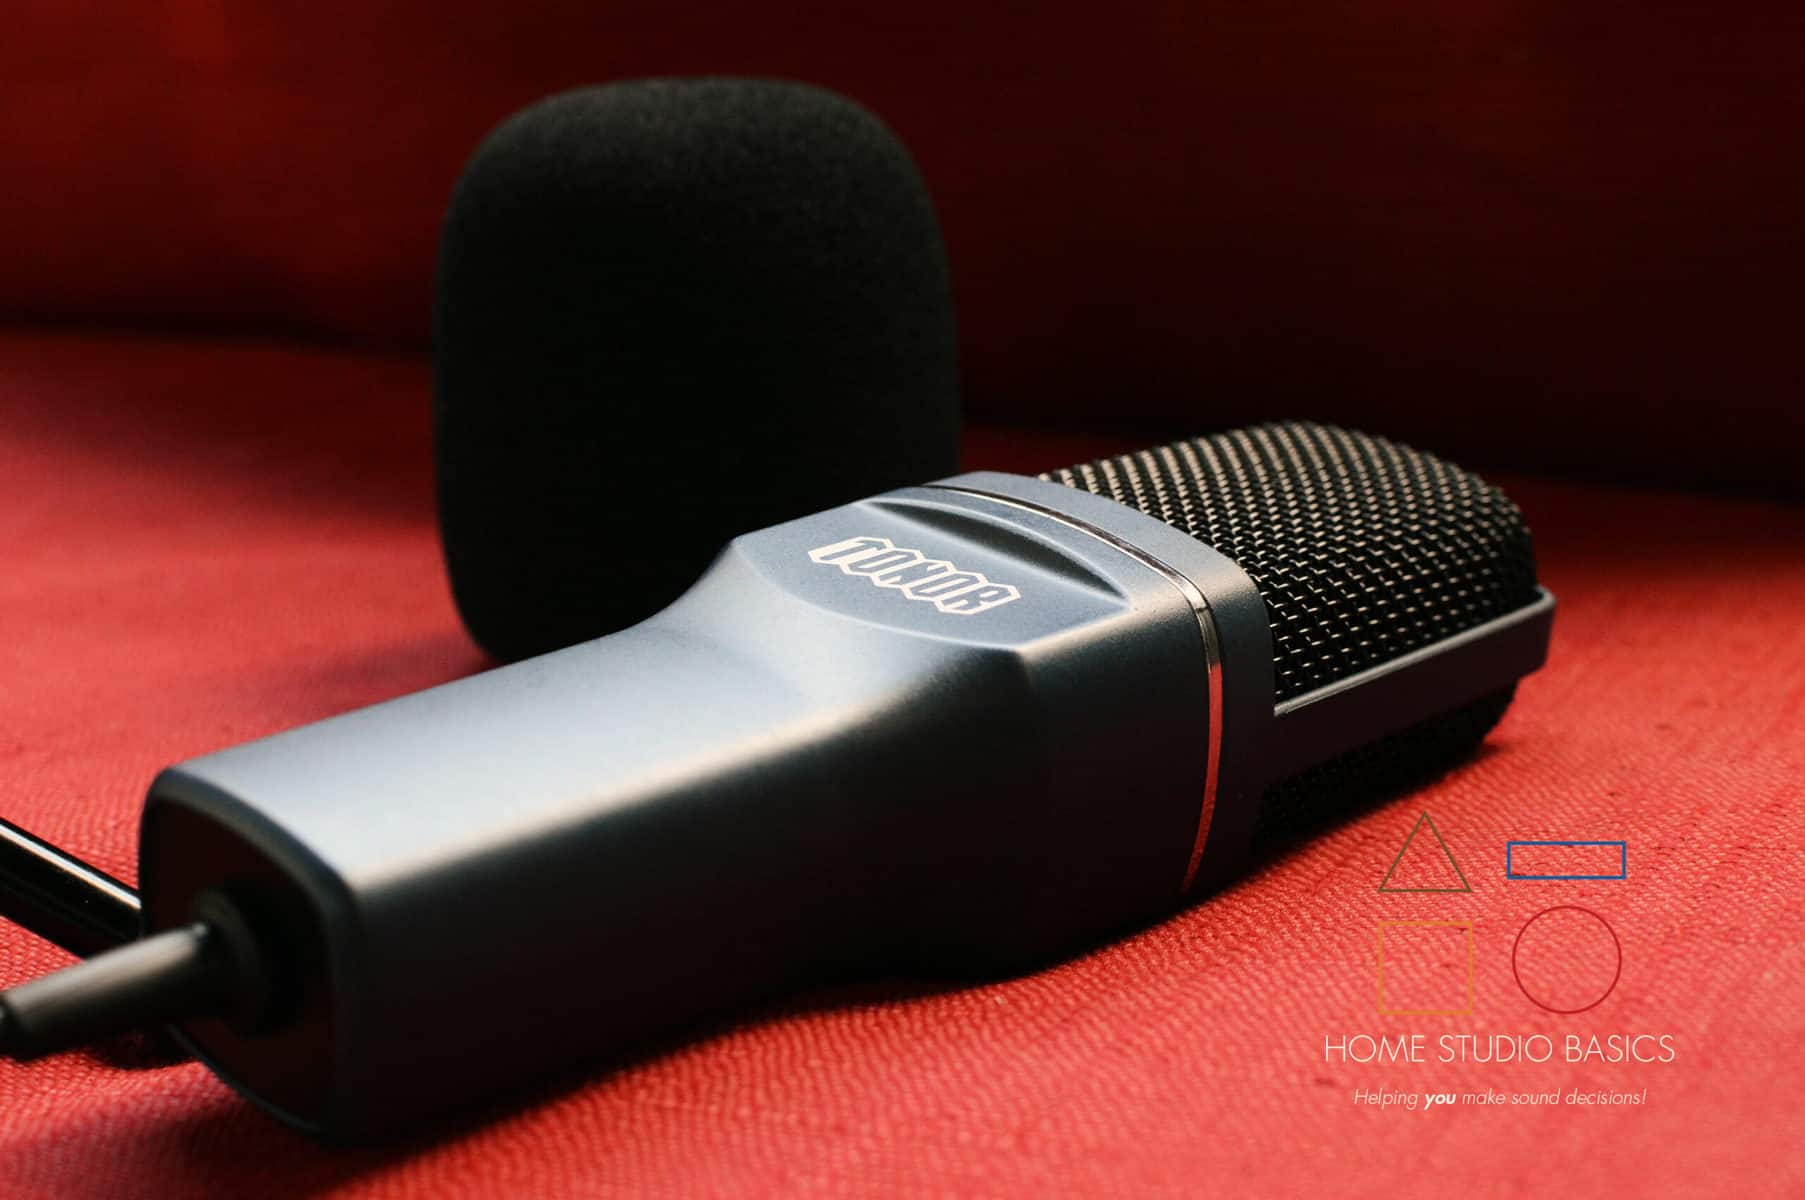 Tonor TC-777 USB Condenser Microphone Review